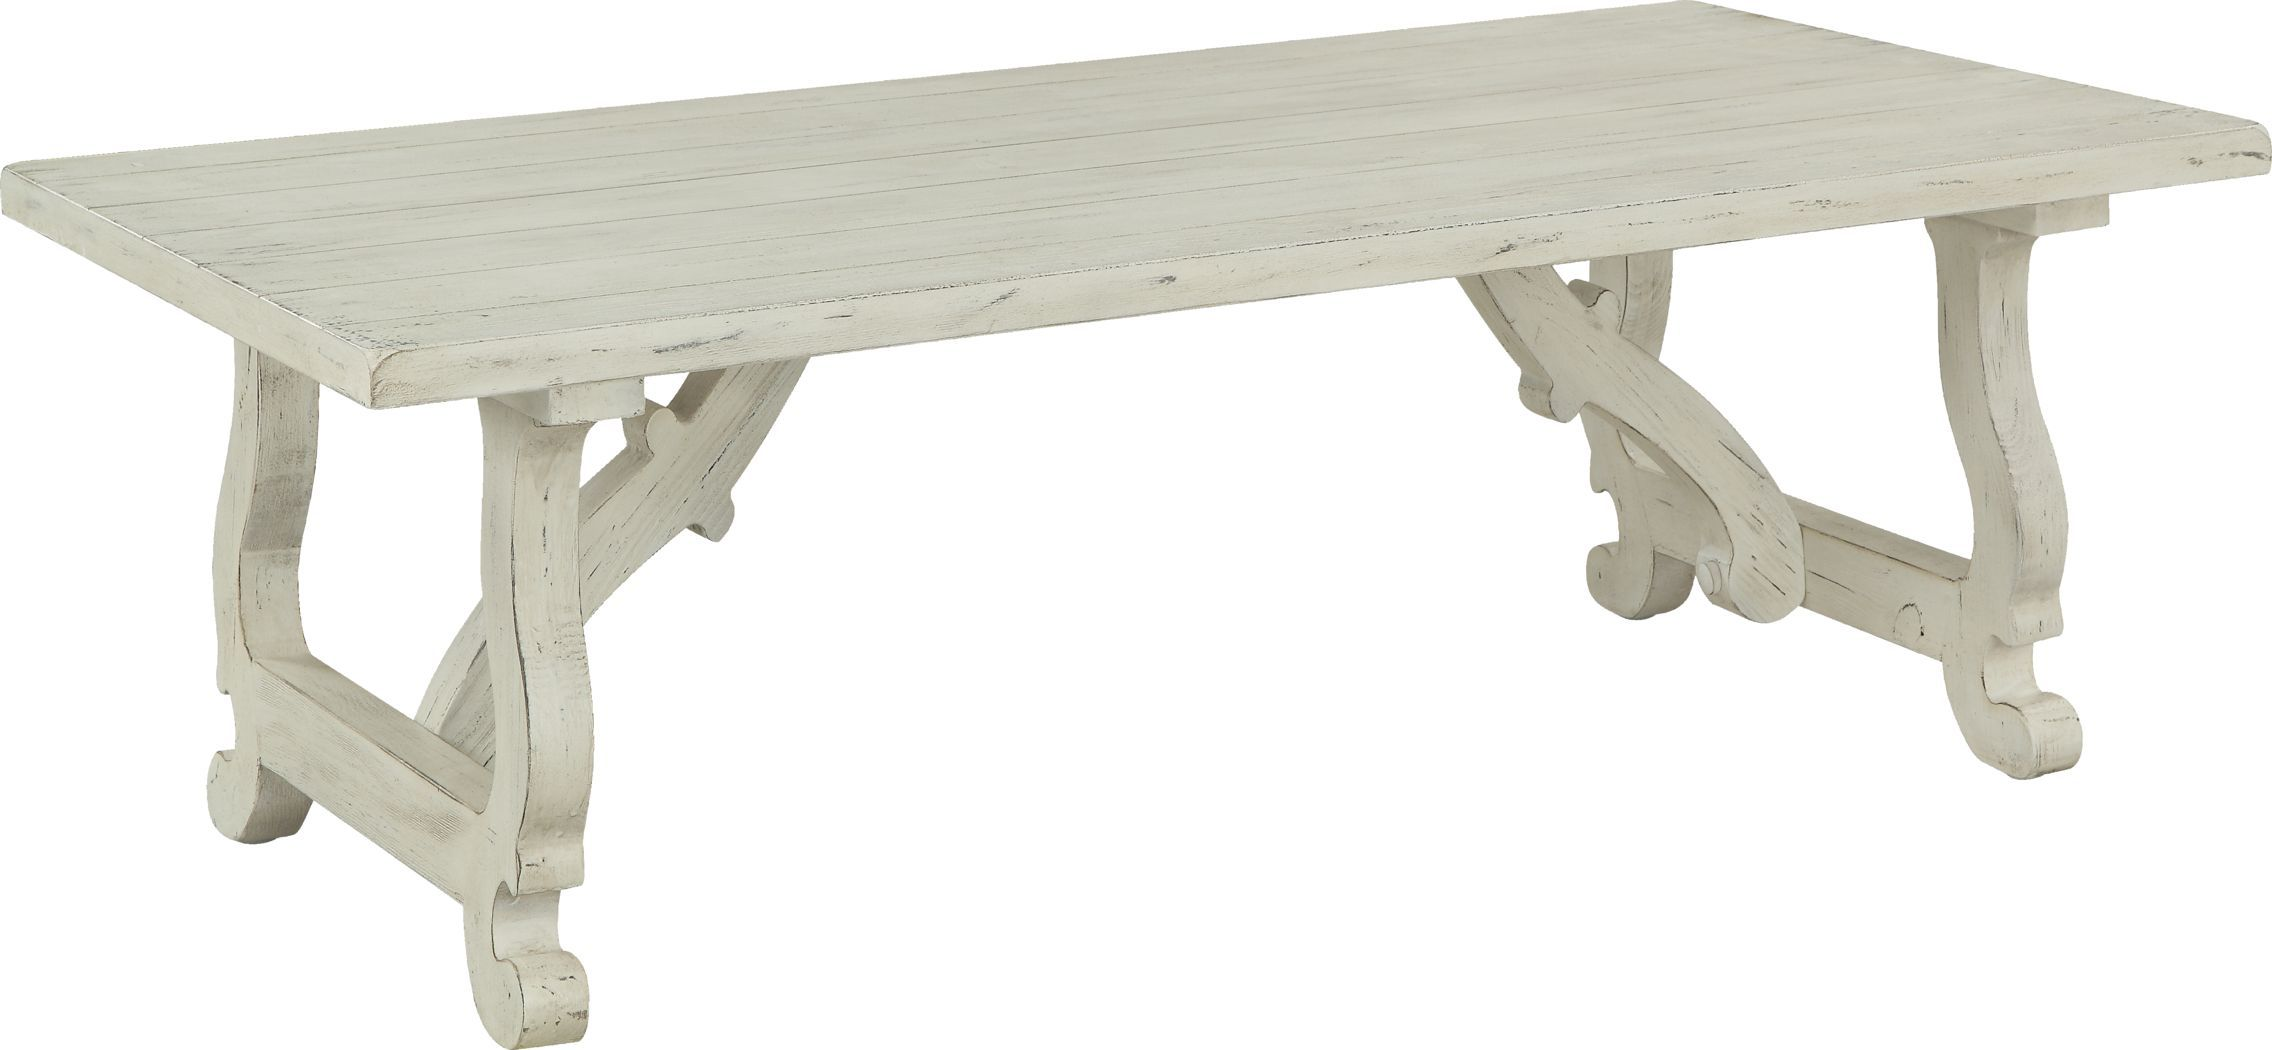 Orchard Park Cream Cocktail Table In 2020 Coffee Table Cocktail Tables Coffee Tables For Sale